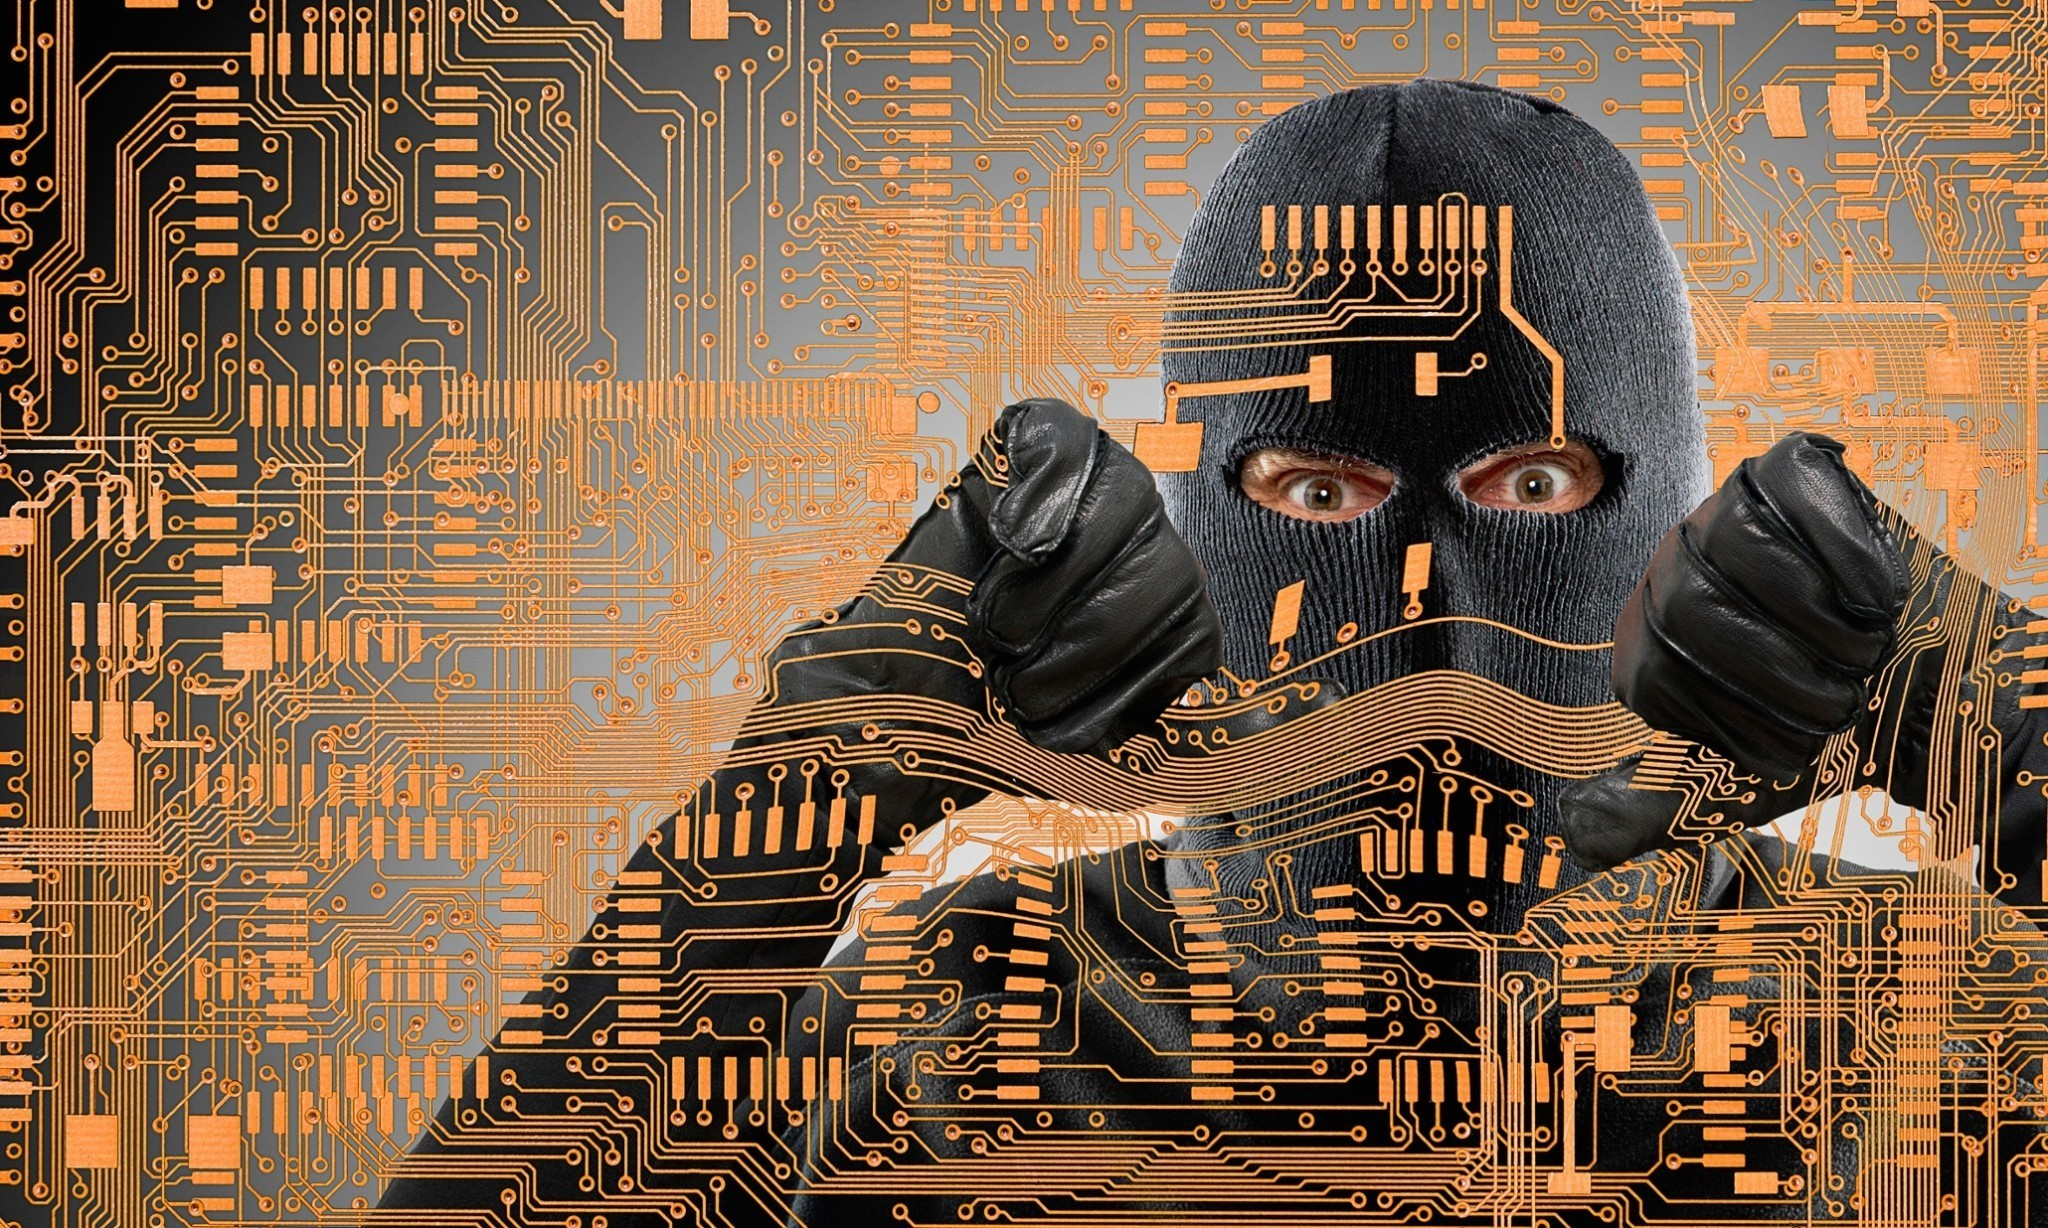 How you could become a victim of cybercrime in 2015